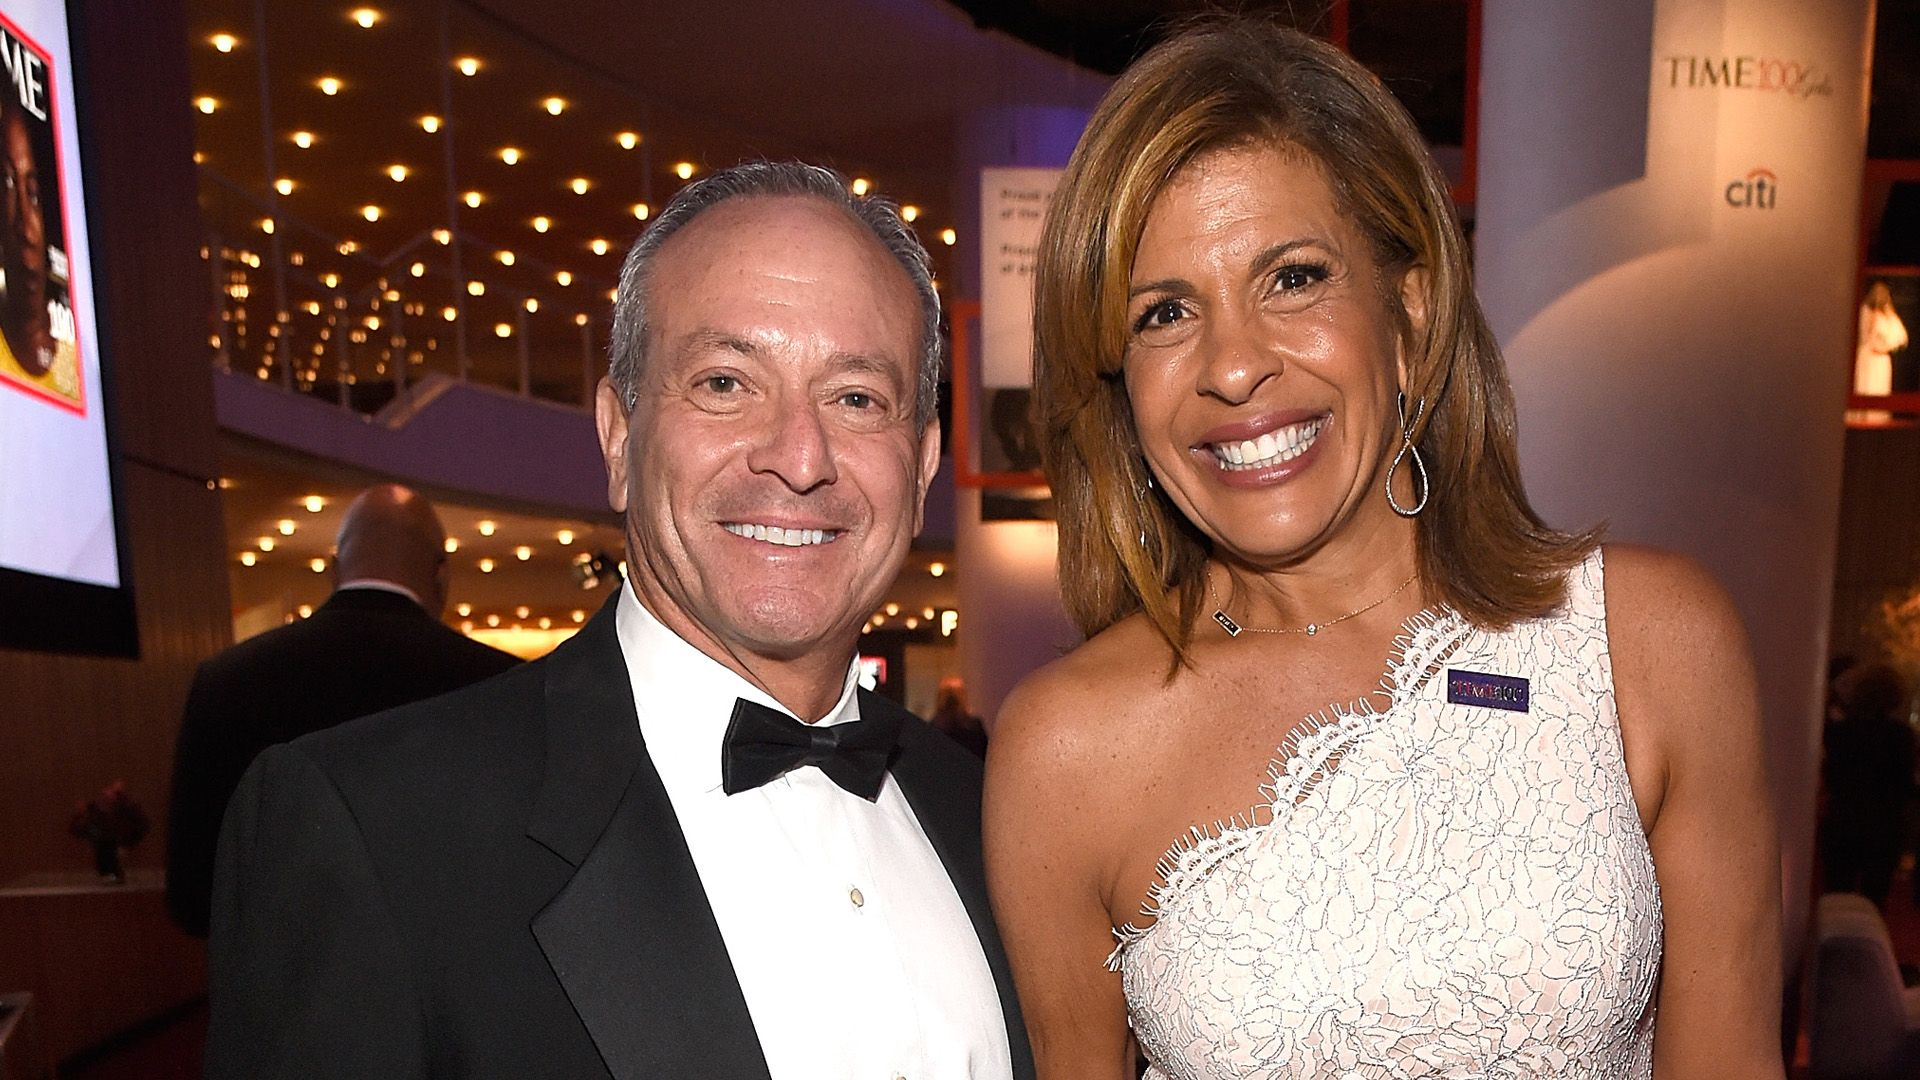 'Today' Star Hoda Kotb Shares Touching Instagram to Celebrate Dylan Dreyer's Pregnancy